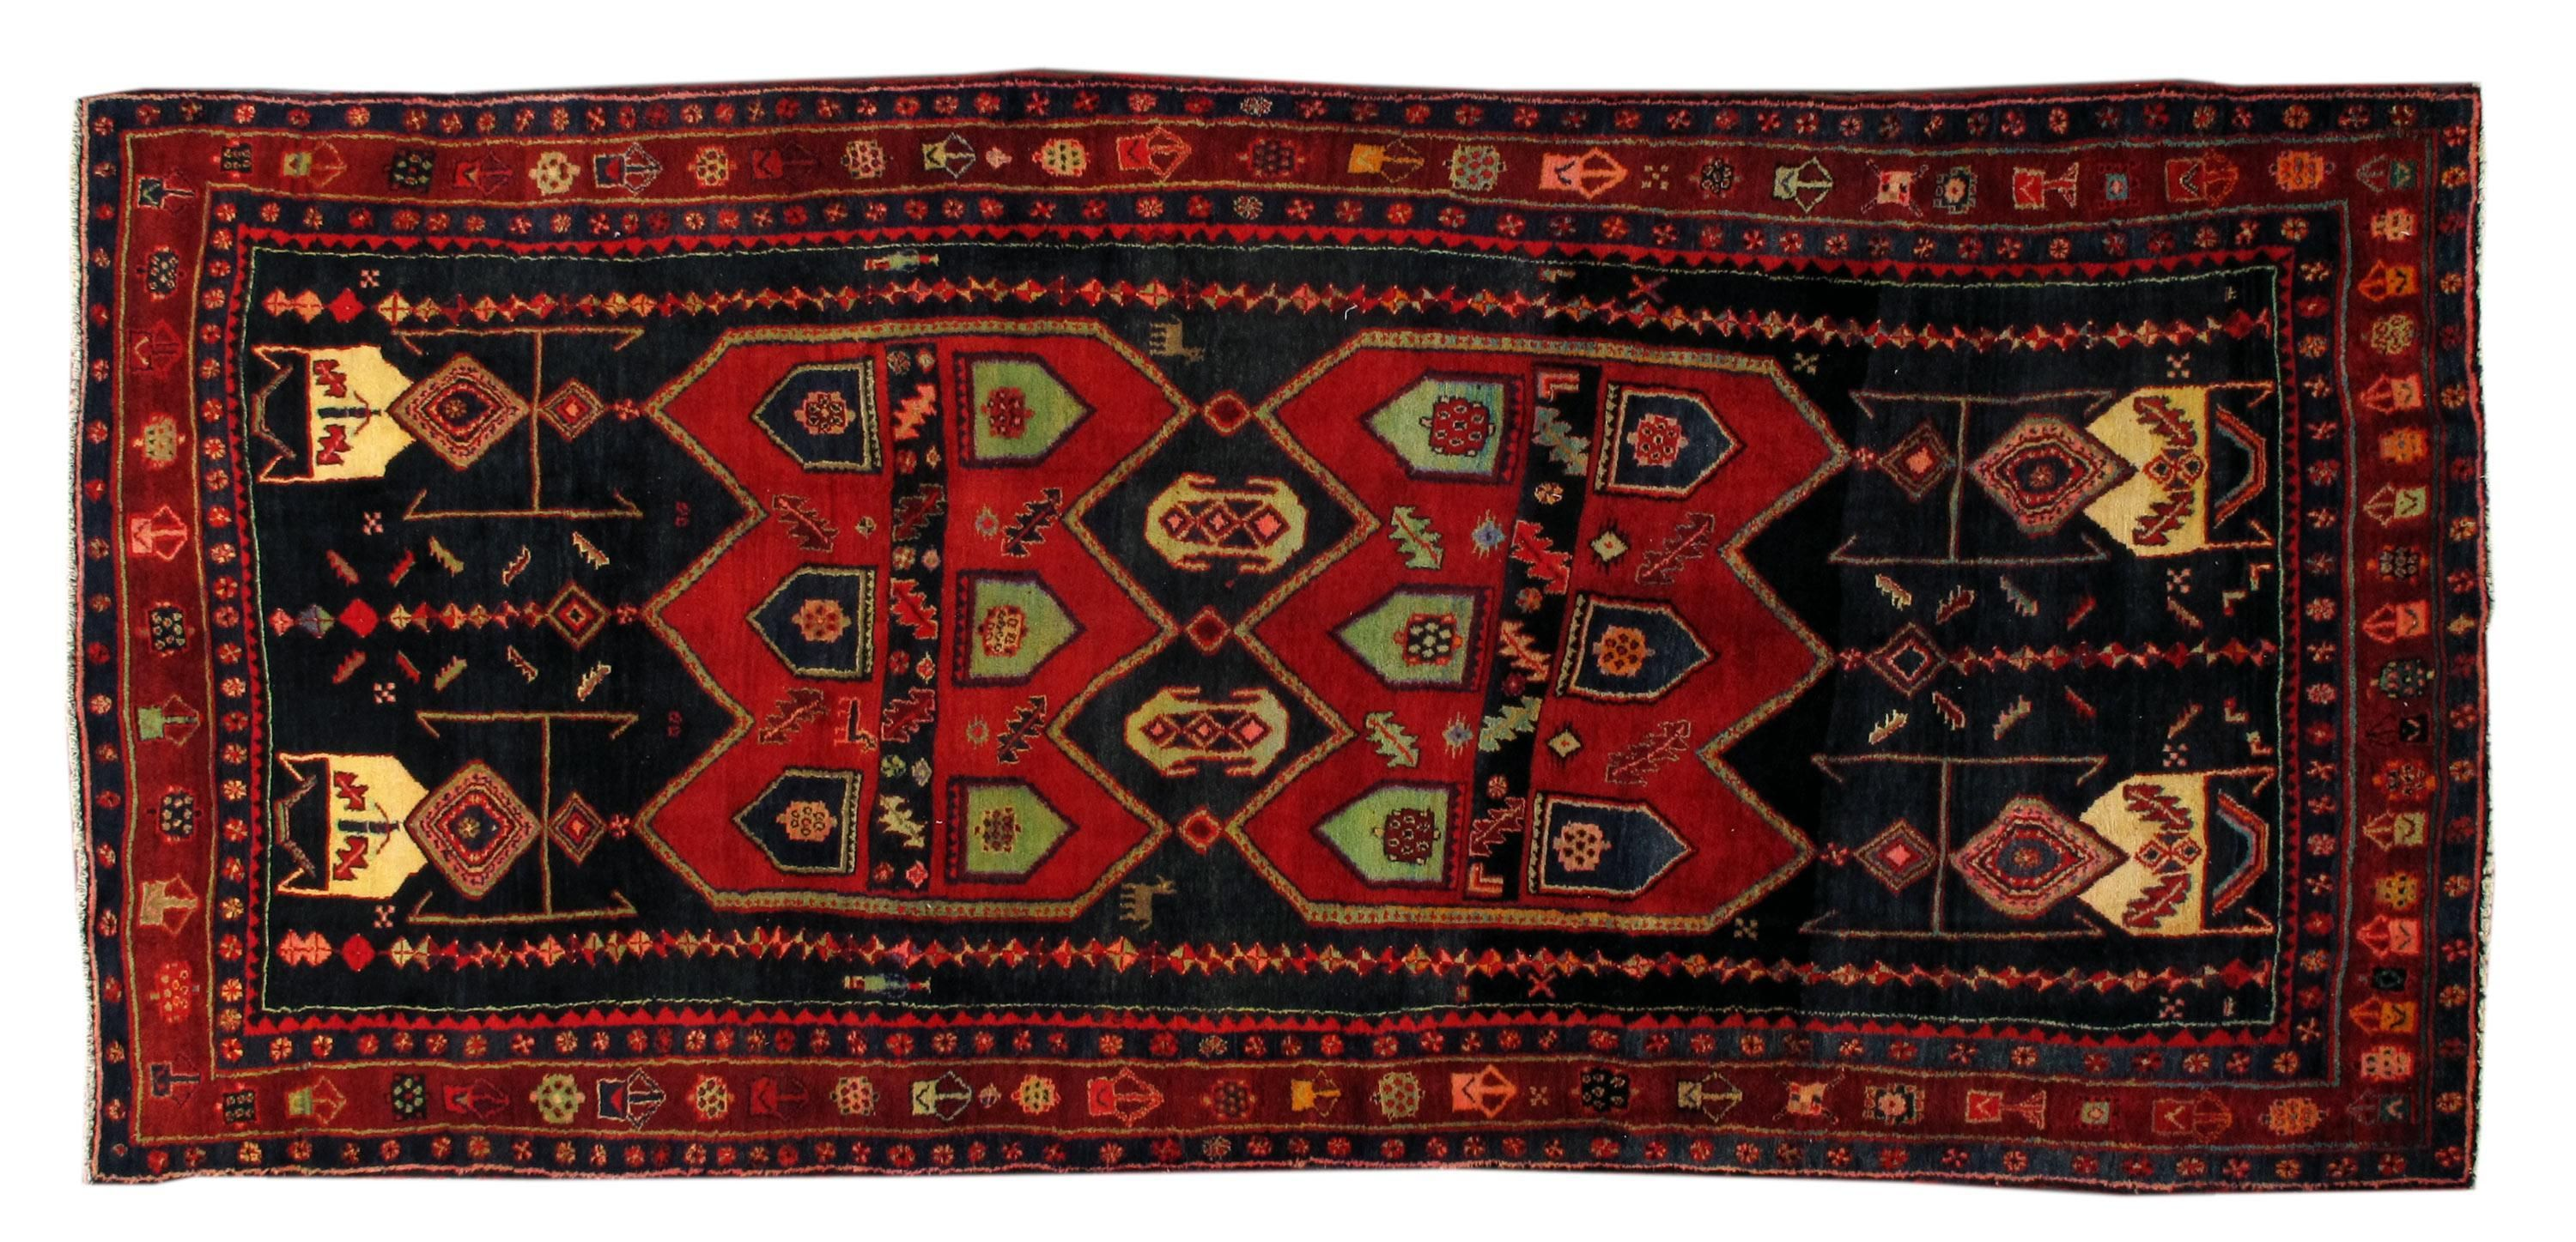 A vintage hand-knotted Persian Bidjar, gallery sized, with an all-over tribal geometric pattern. This gorgeous rug has magnificent detailing in dark red and black colors with cream, green, blue, and orange accents. It would be perfect as a large living room or bedroom area rug!